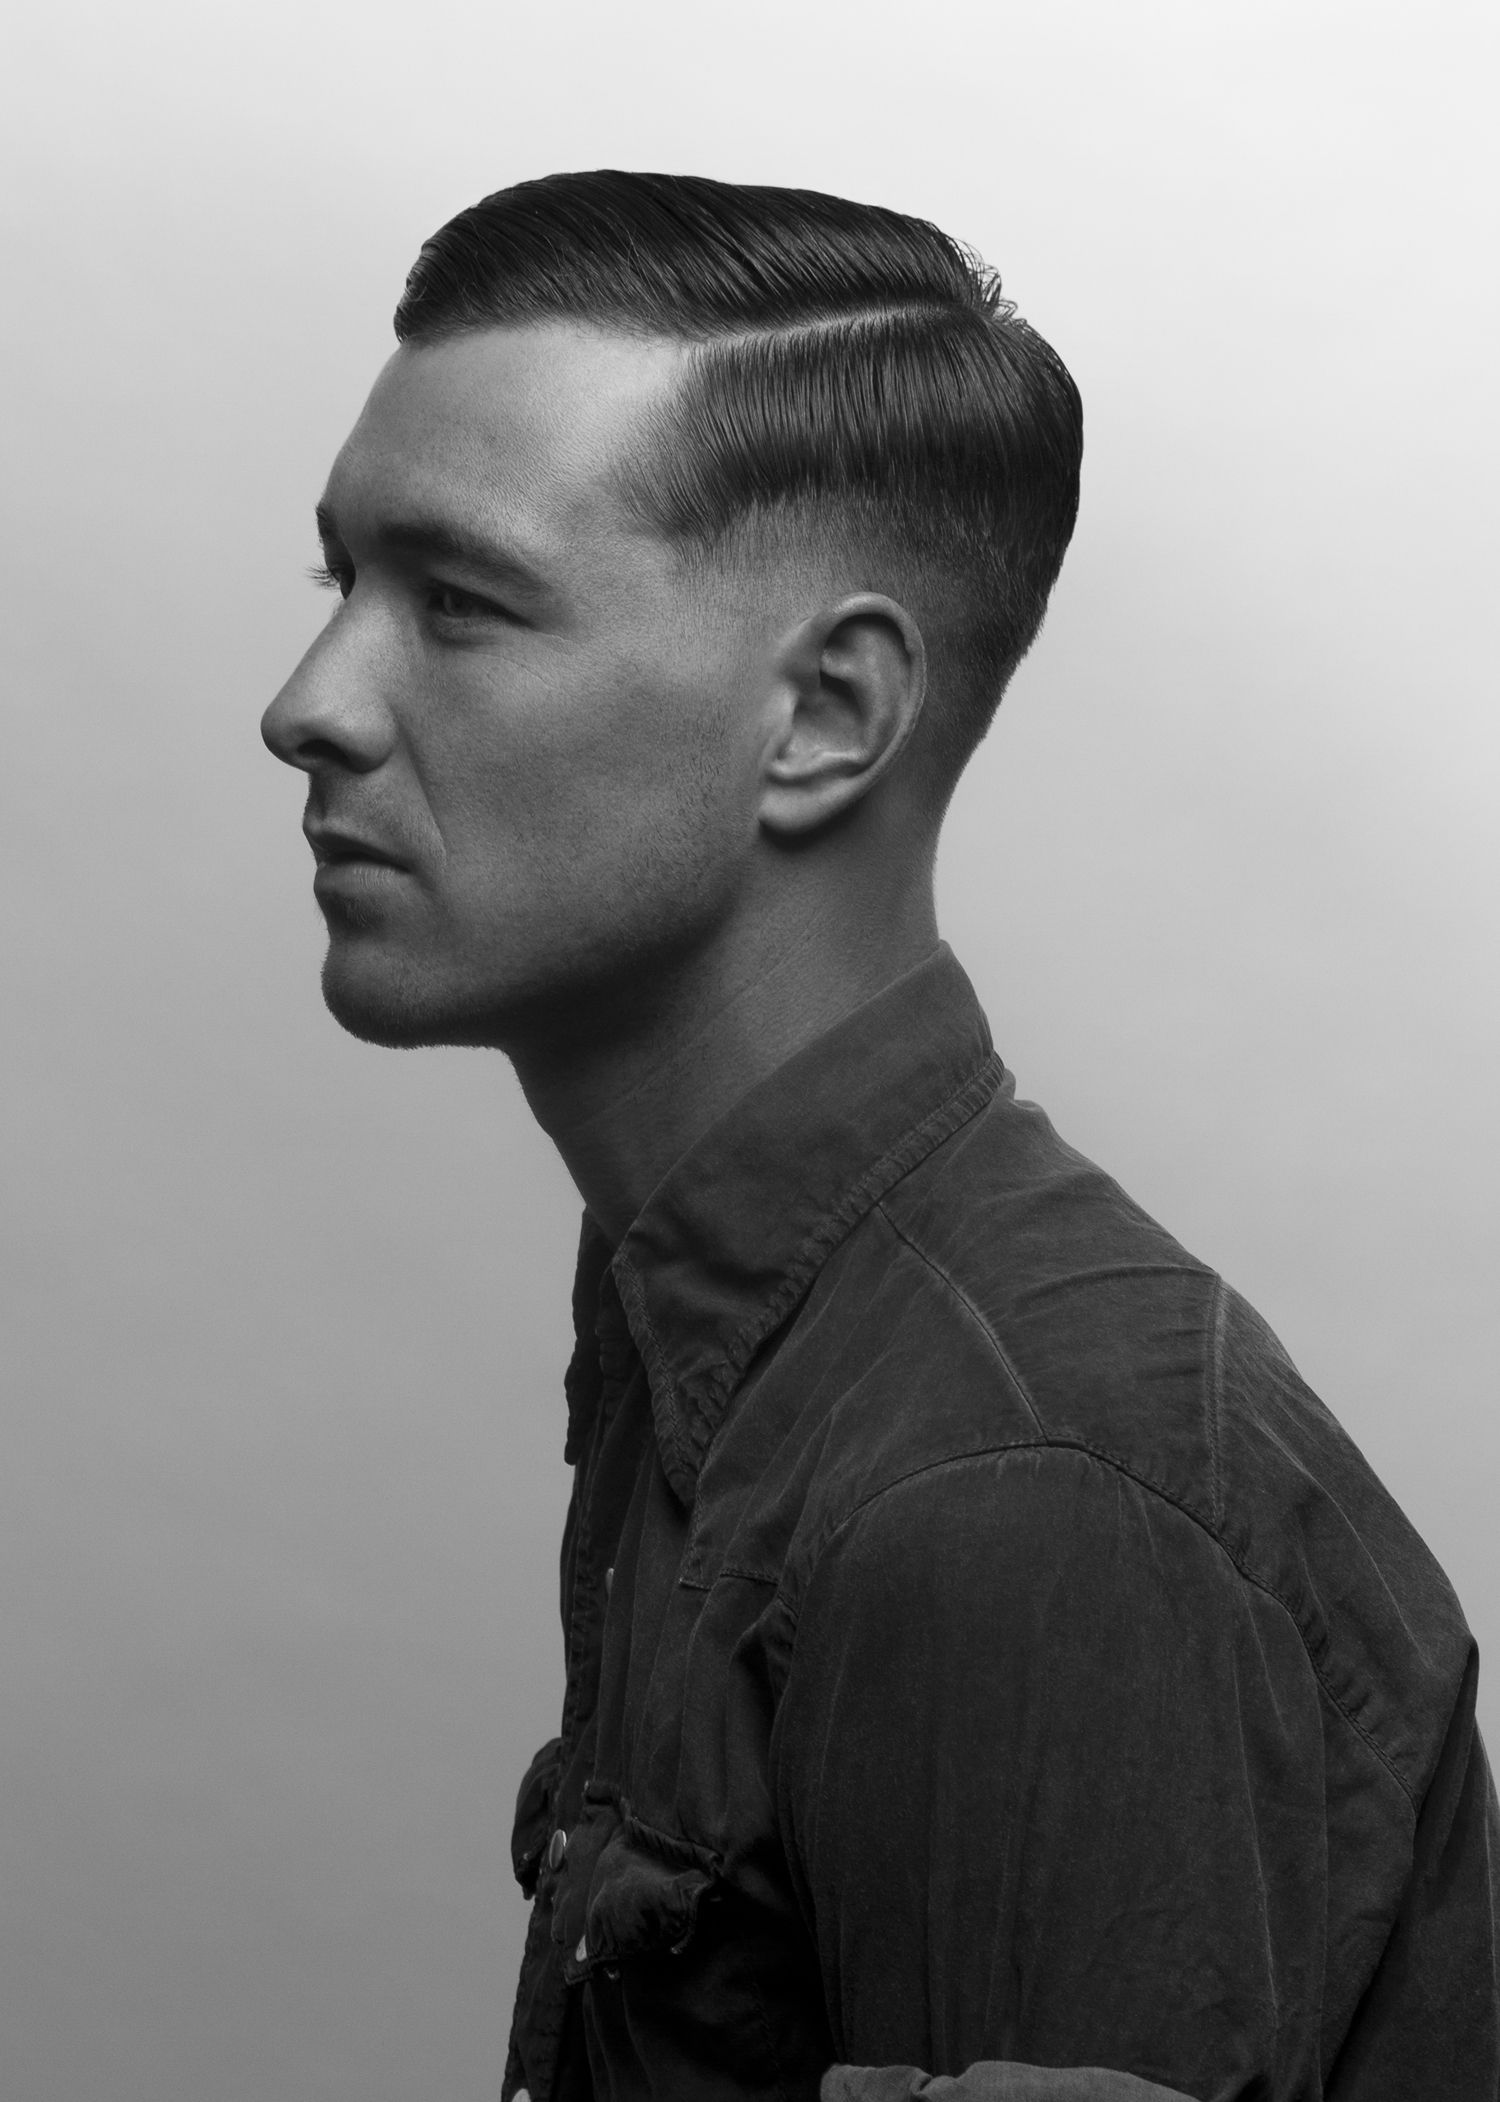 Best Hairstyle Ever For Men The Best Haircut Ever C H I C Pinterest Curves Much And 1